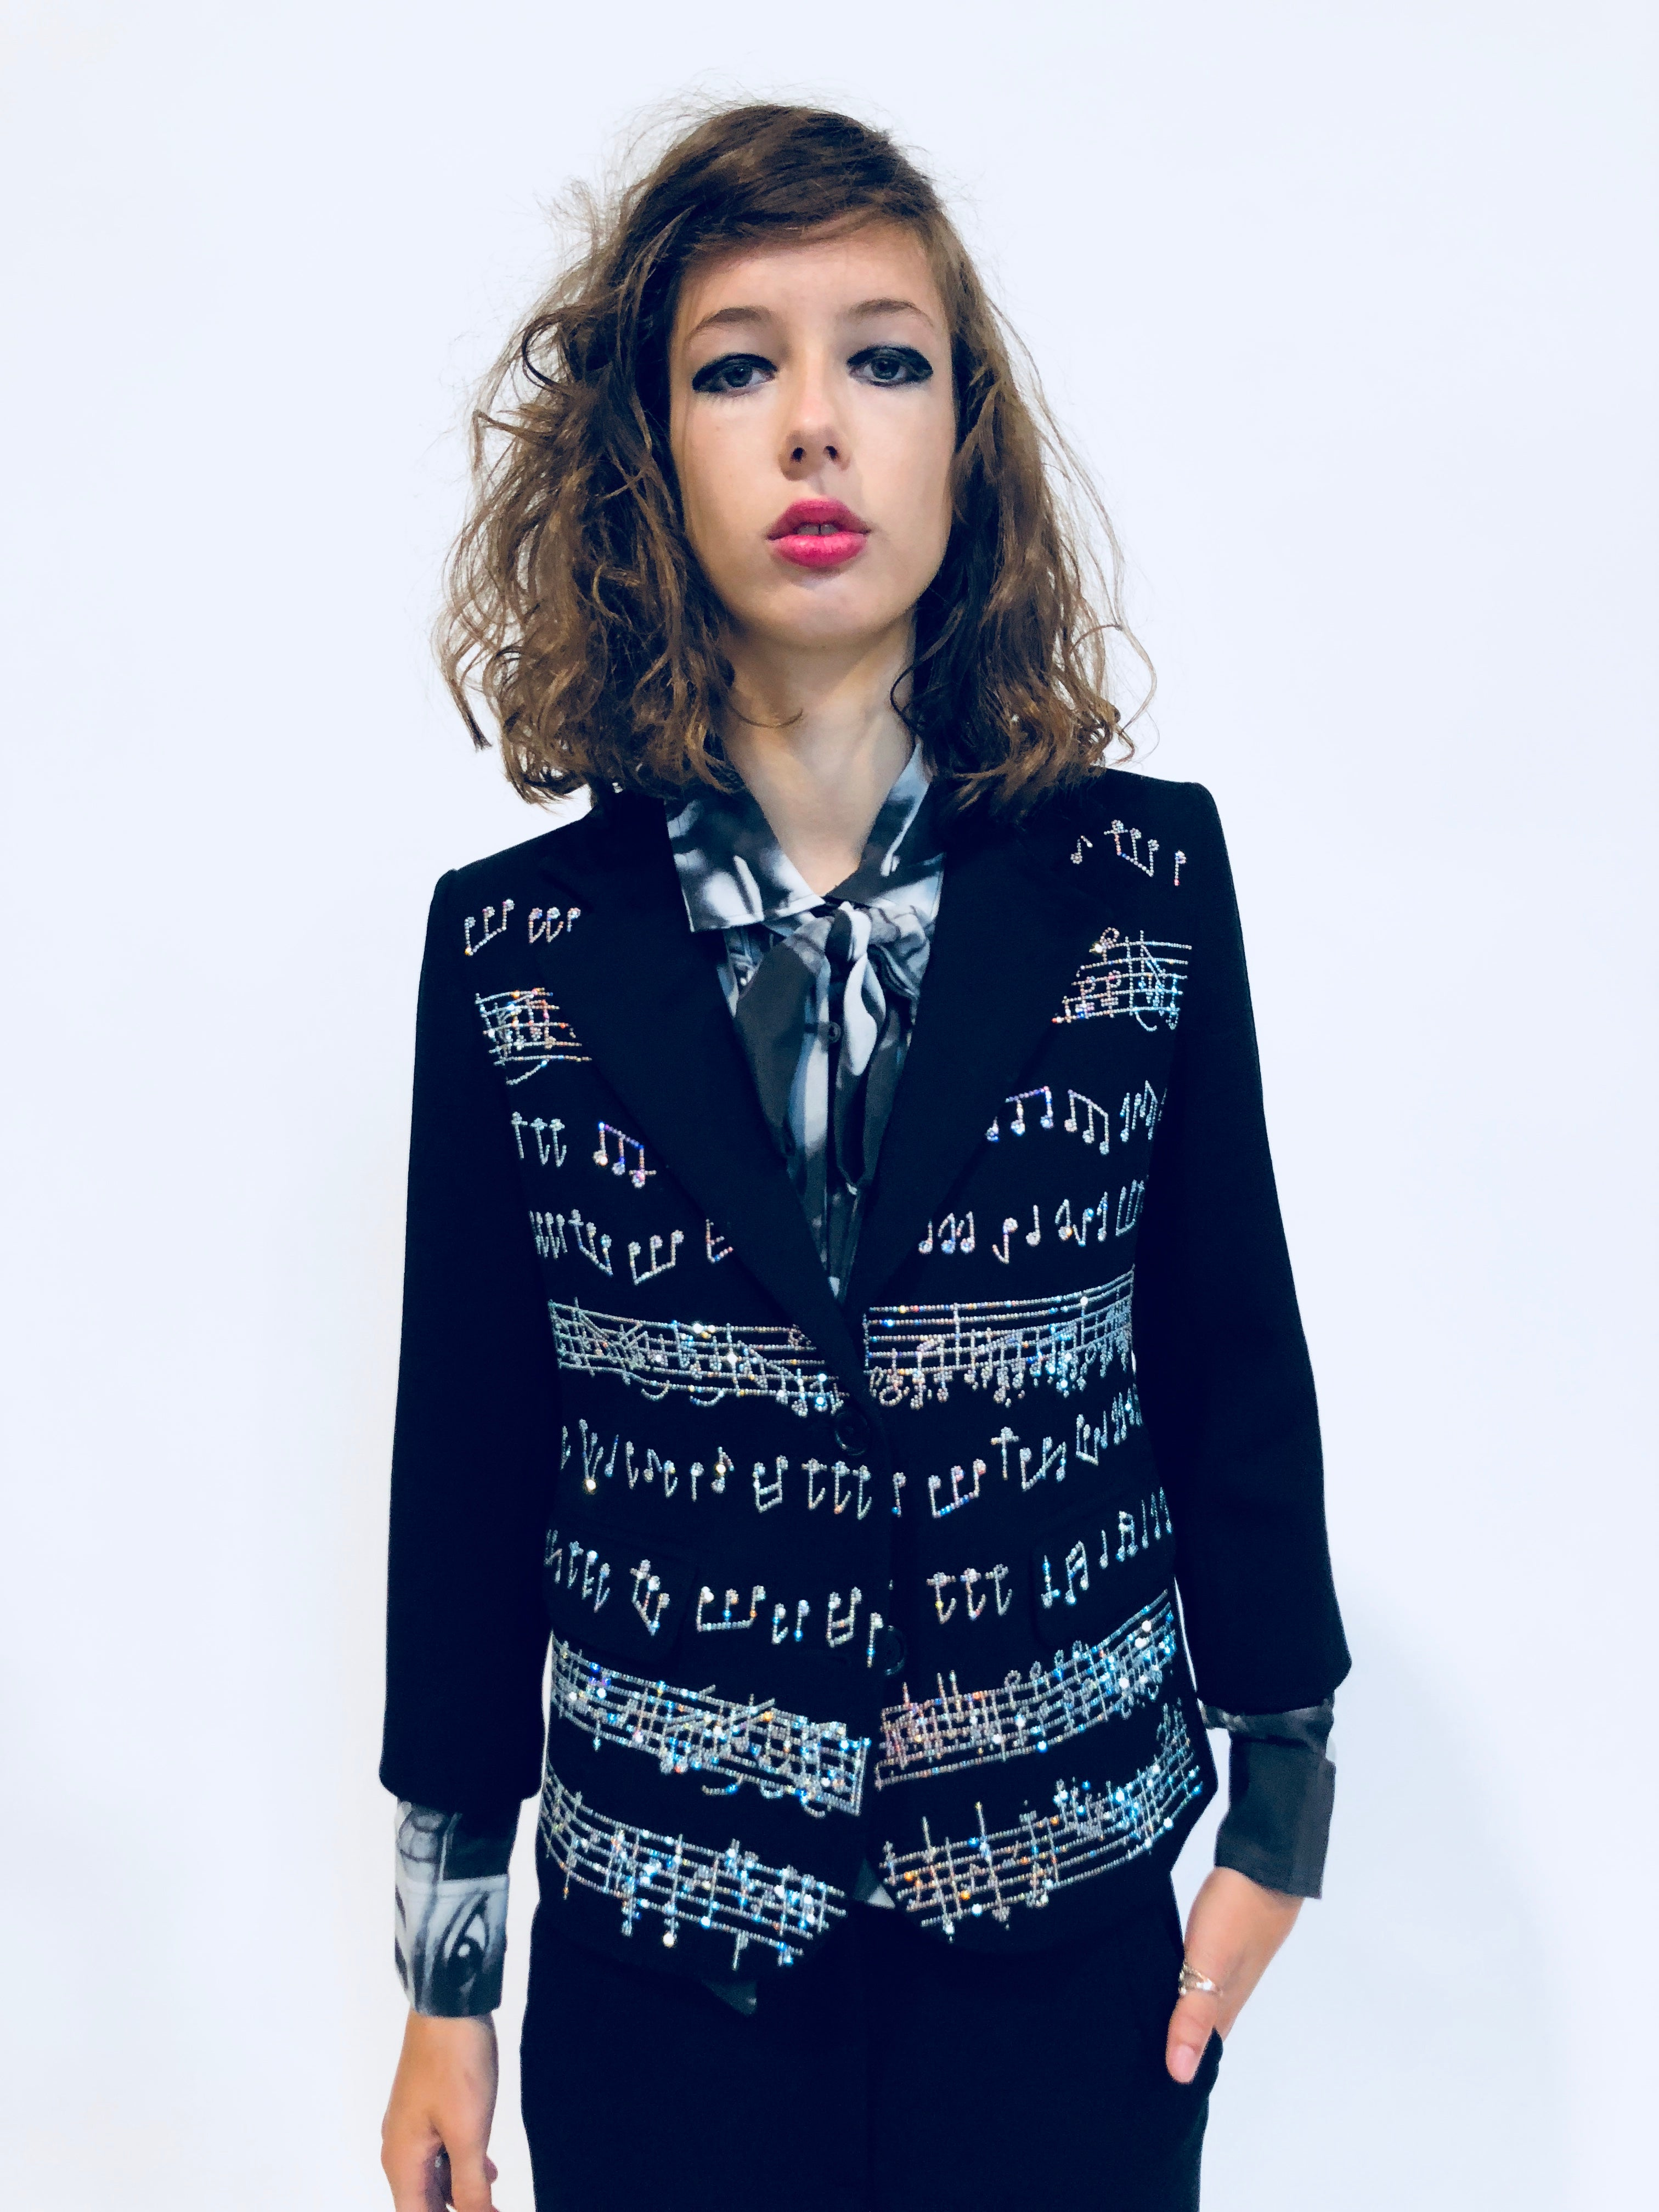 MUSIC NOTES BLAZER - Women's Jackets & Coats - Libertine